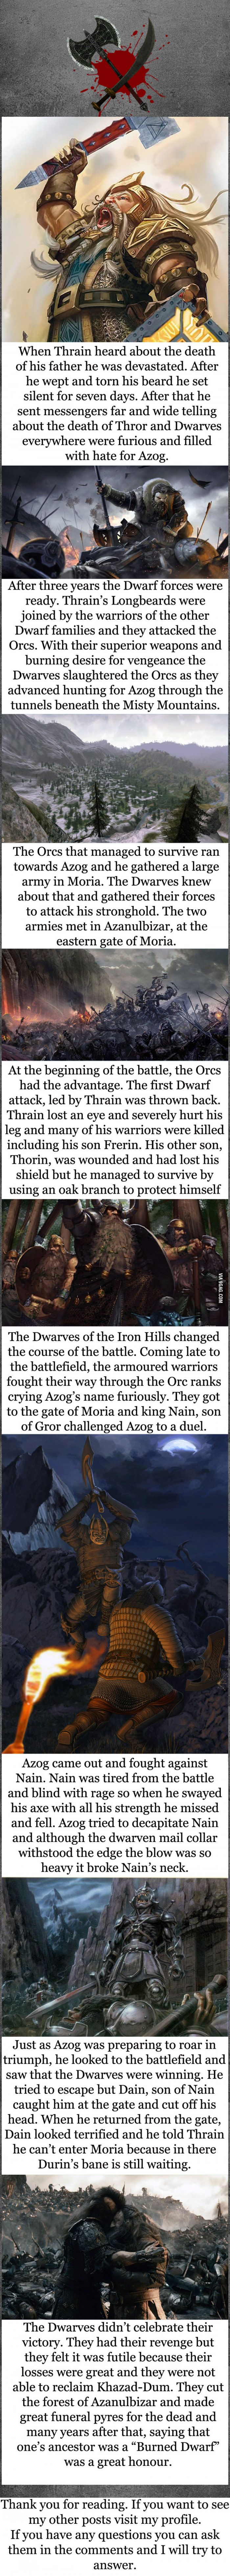 Tolkien lore - Battle of Azanulbizar